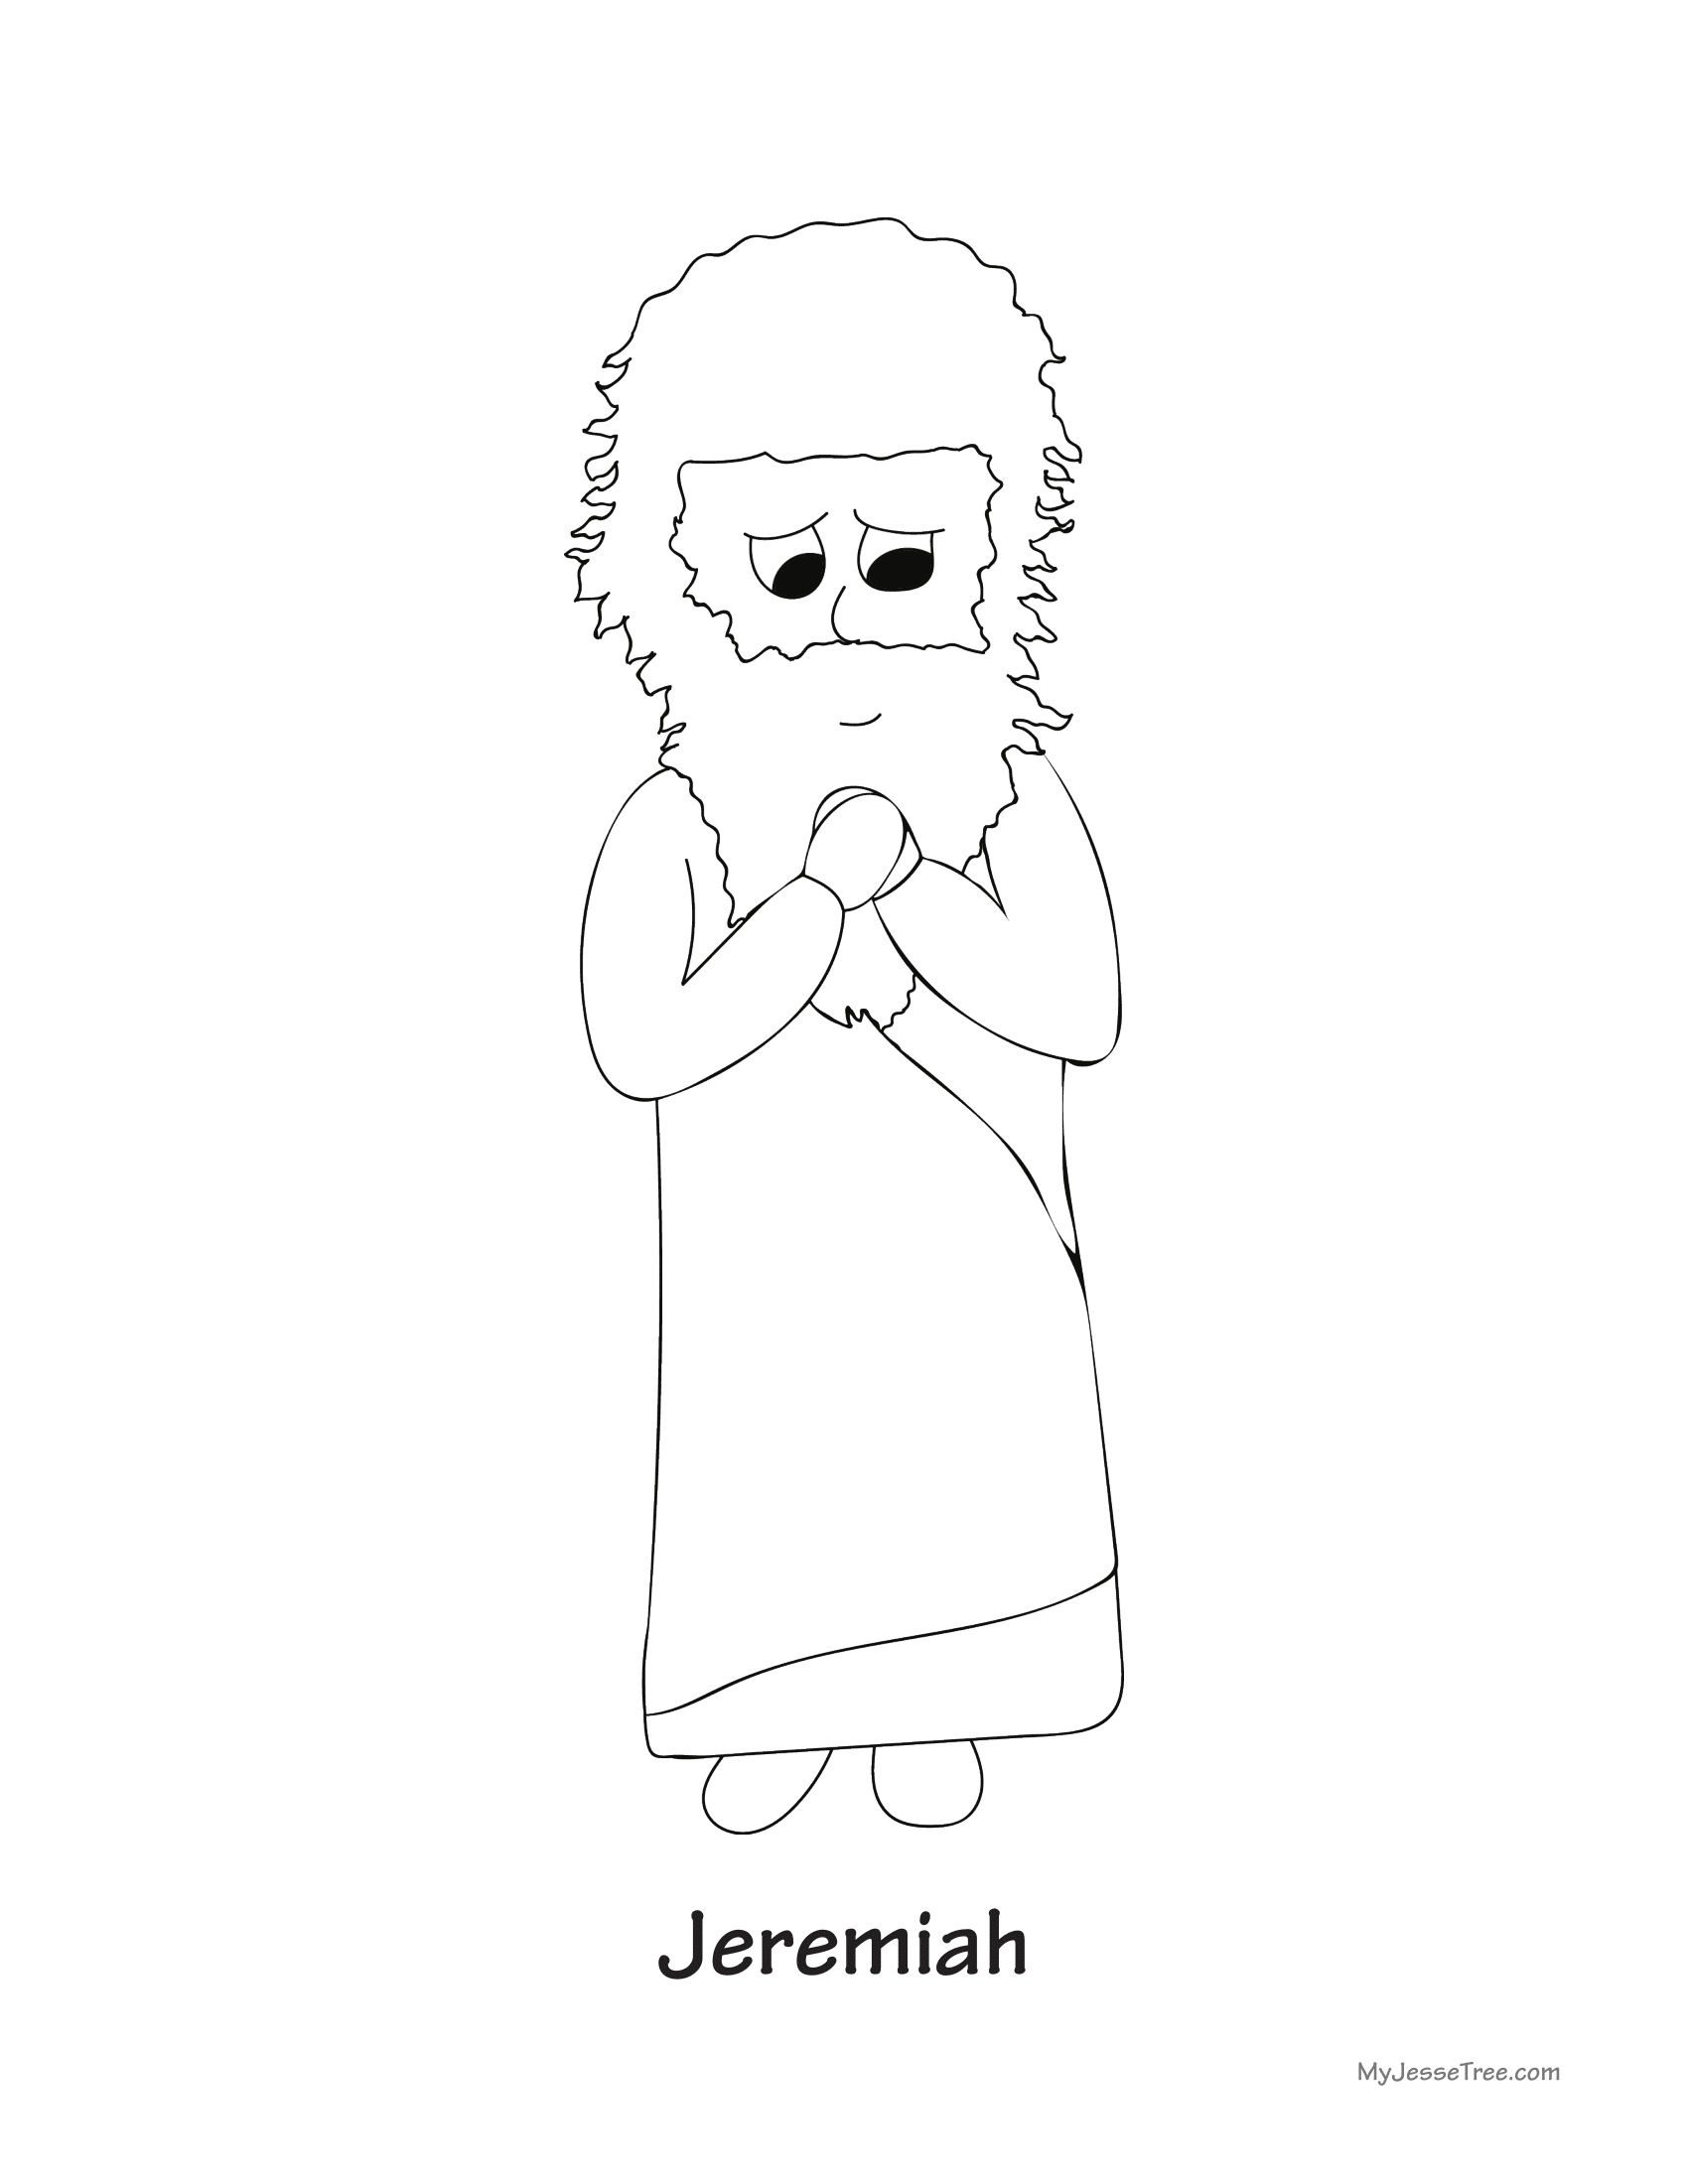 Jeremiah 313 Colouring Sheet Sketch Coloring Page